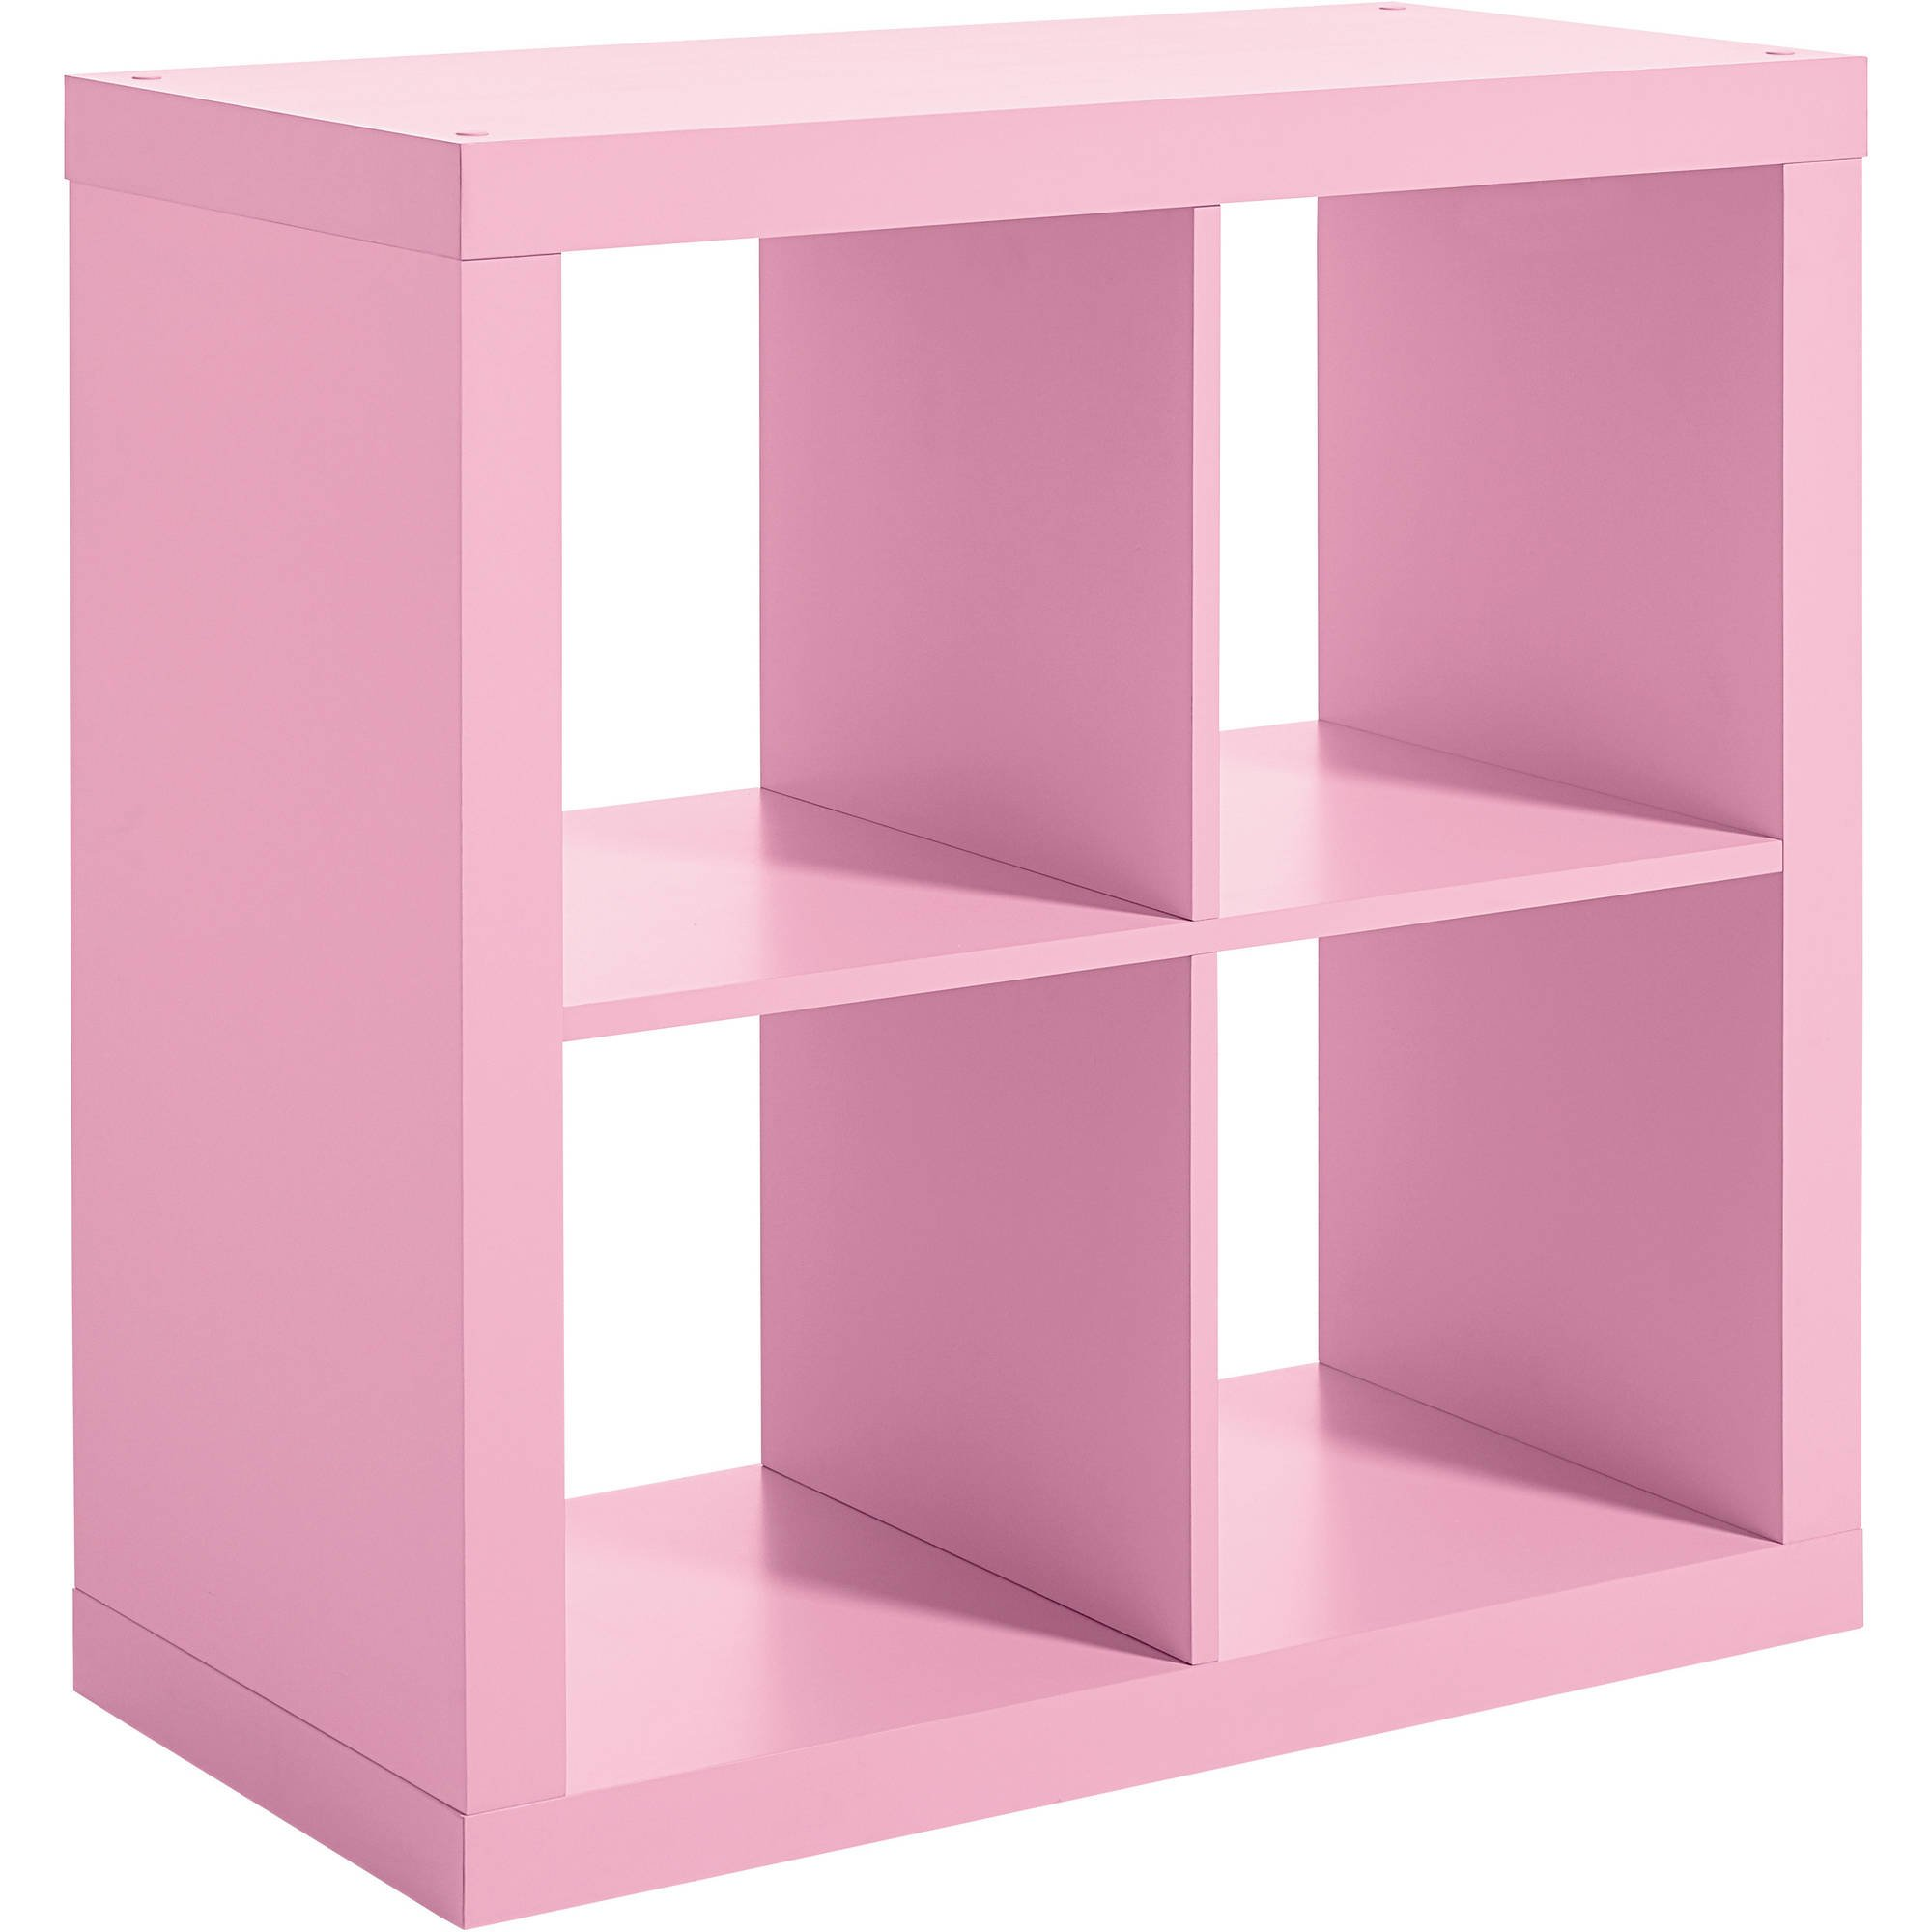 Versatile 4-Cube Storage Case for Organization and Display, Made of MDF and Laminated Particleboard, (Storage Bins and Other Extras NOT Included, Pink + Expert Home Guide by Love US